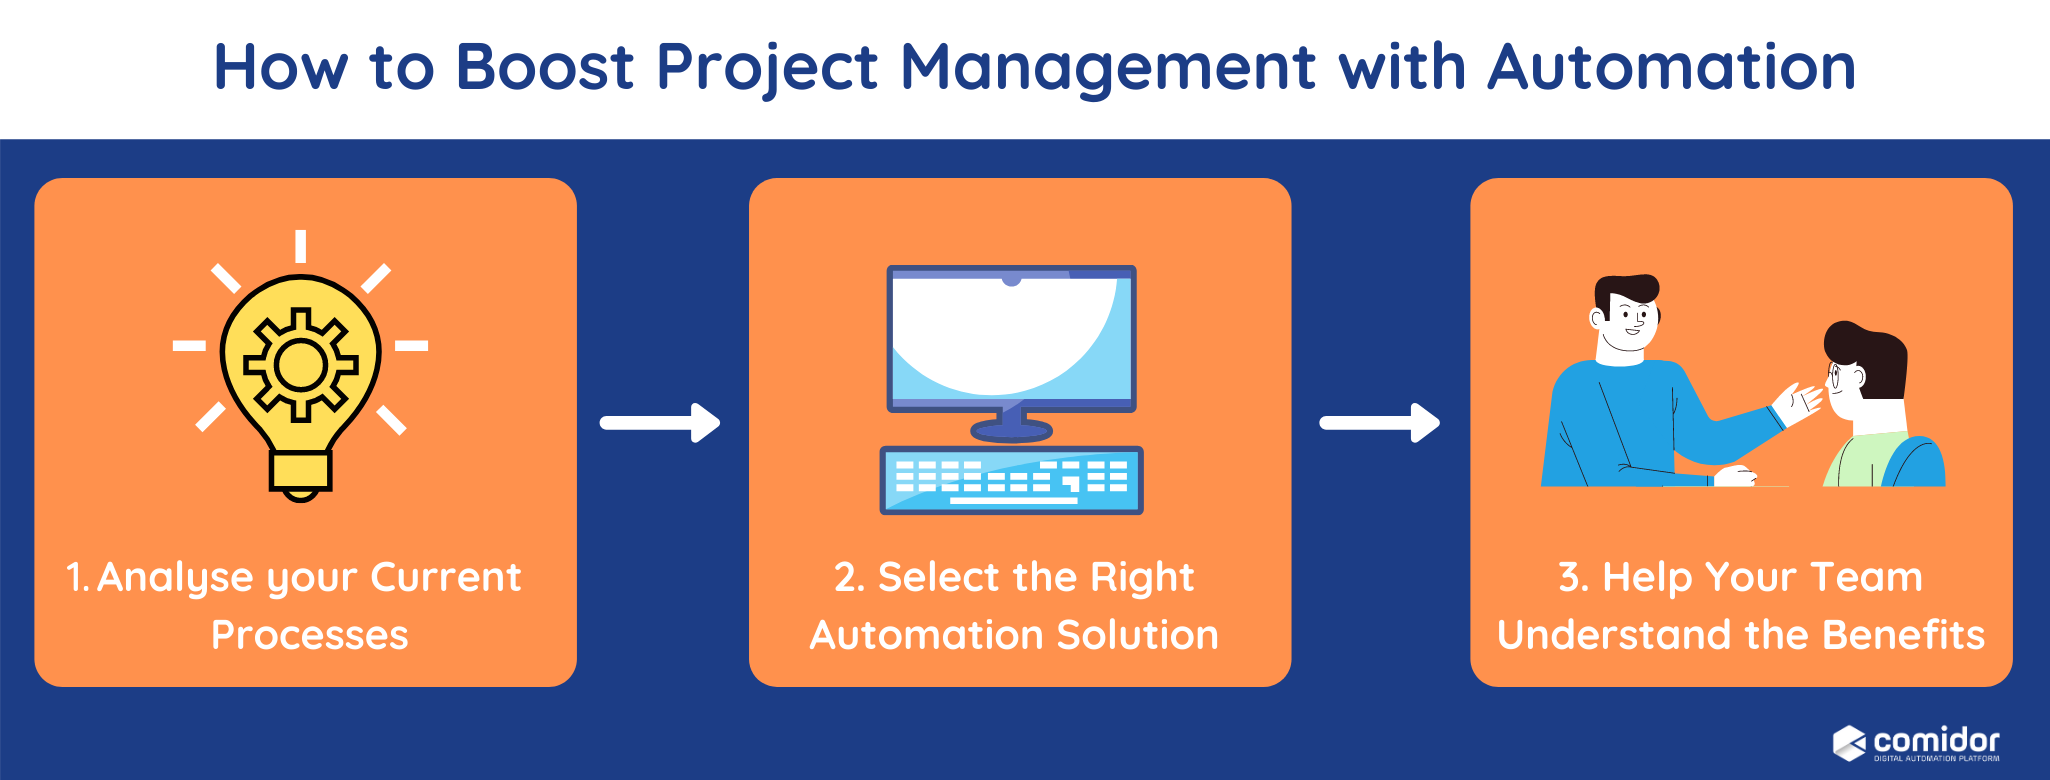 How to boost Project management with Automation | Comidor